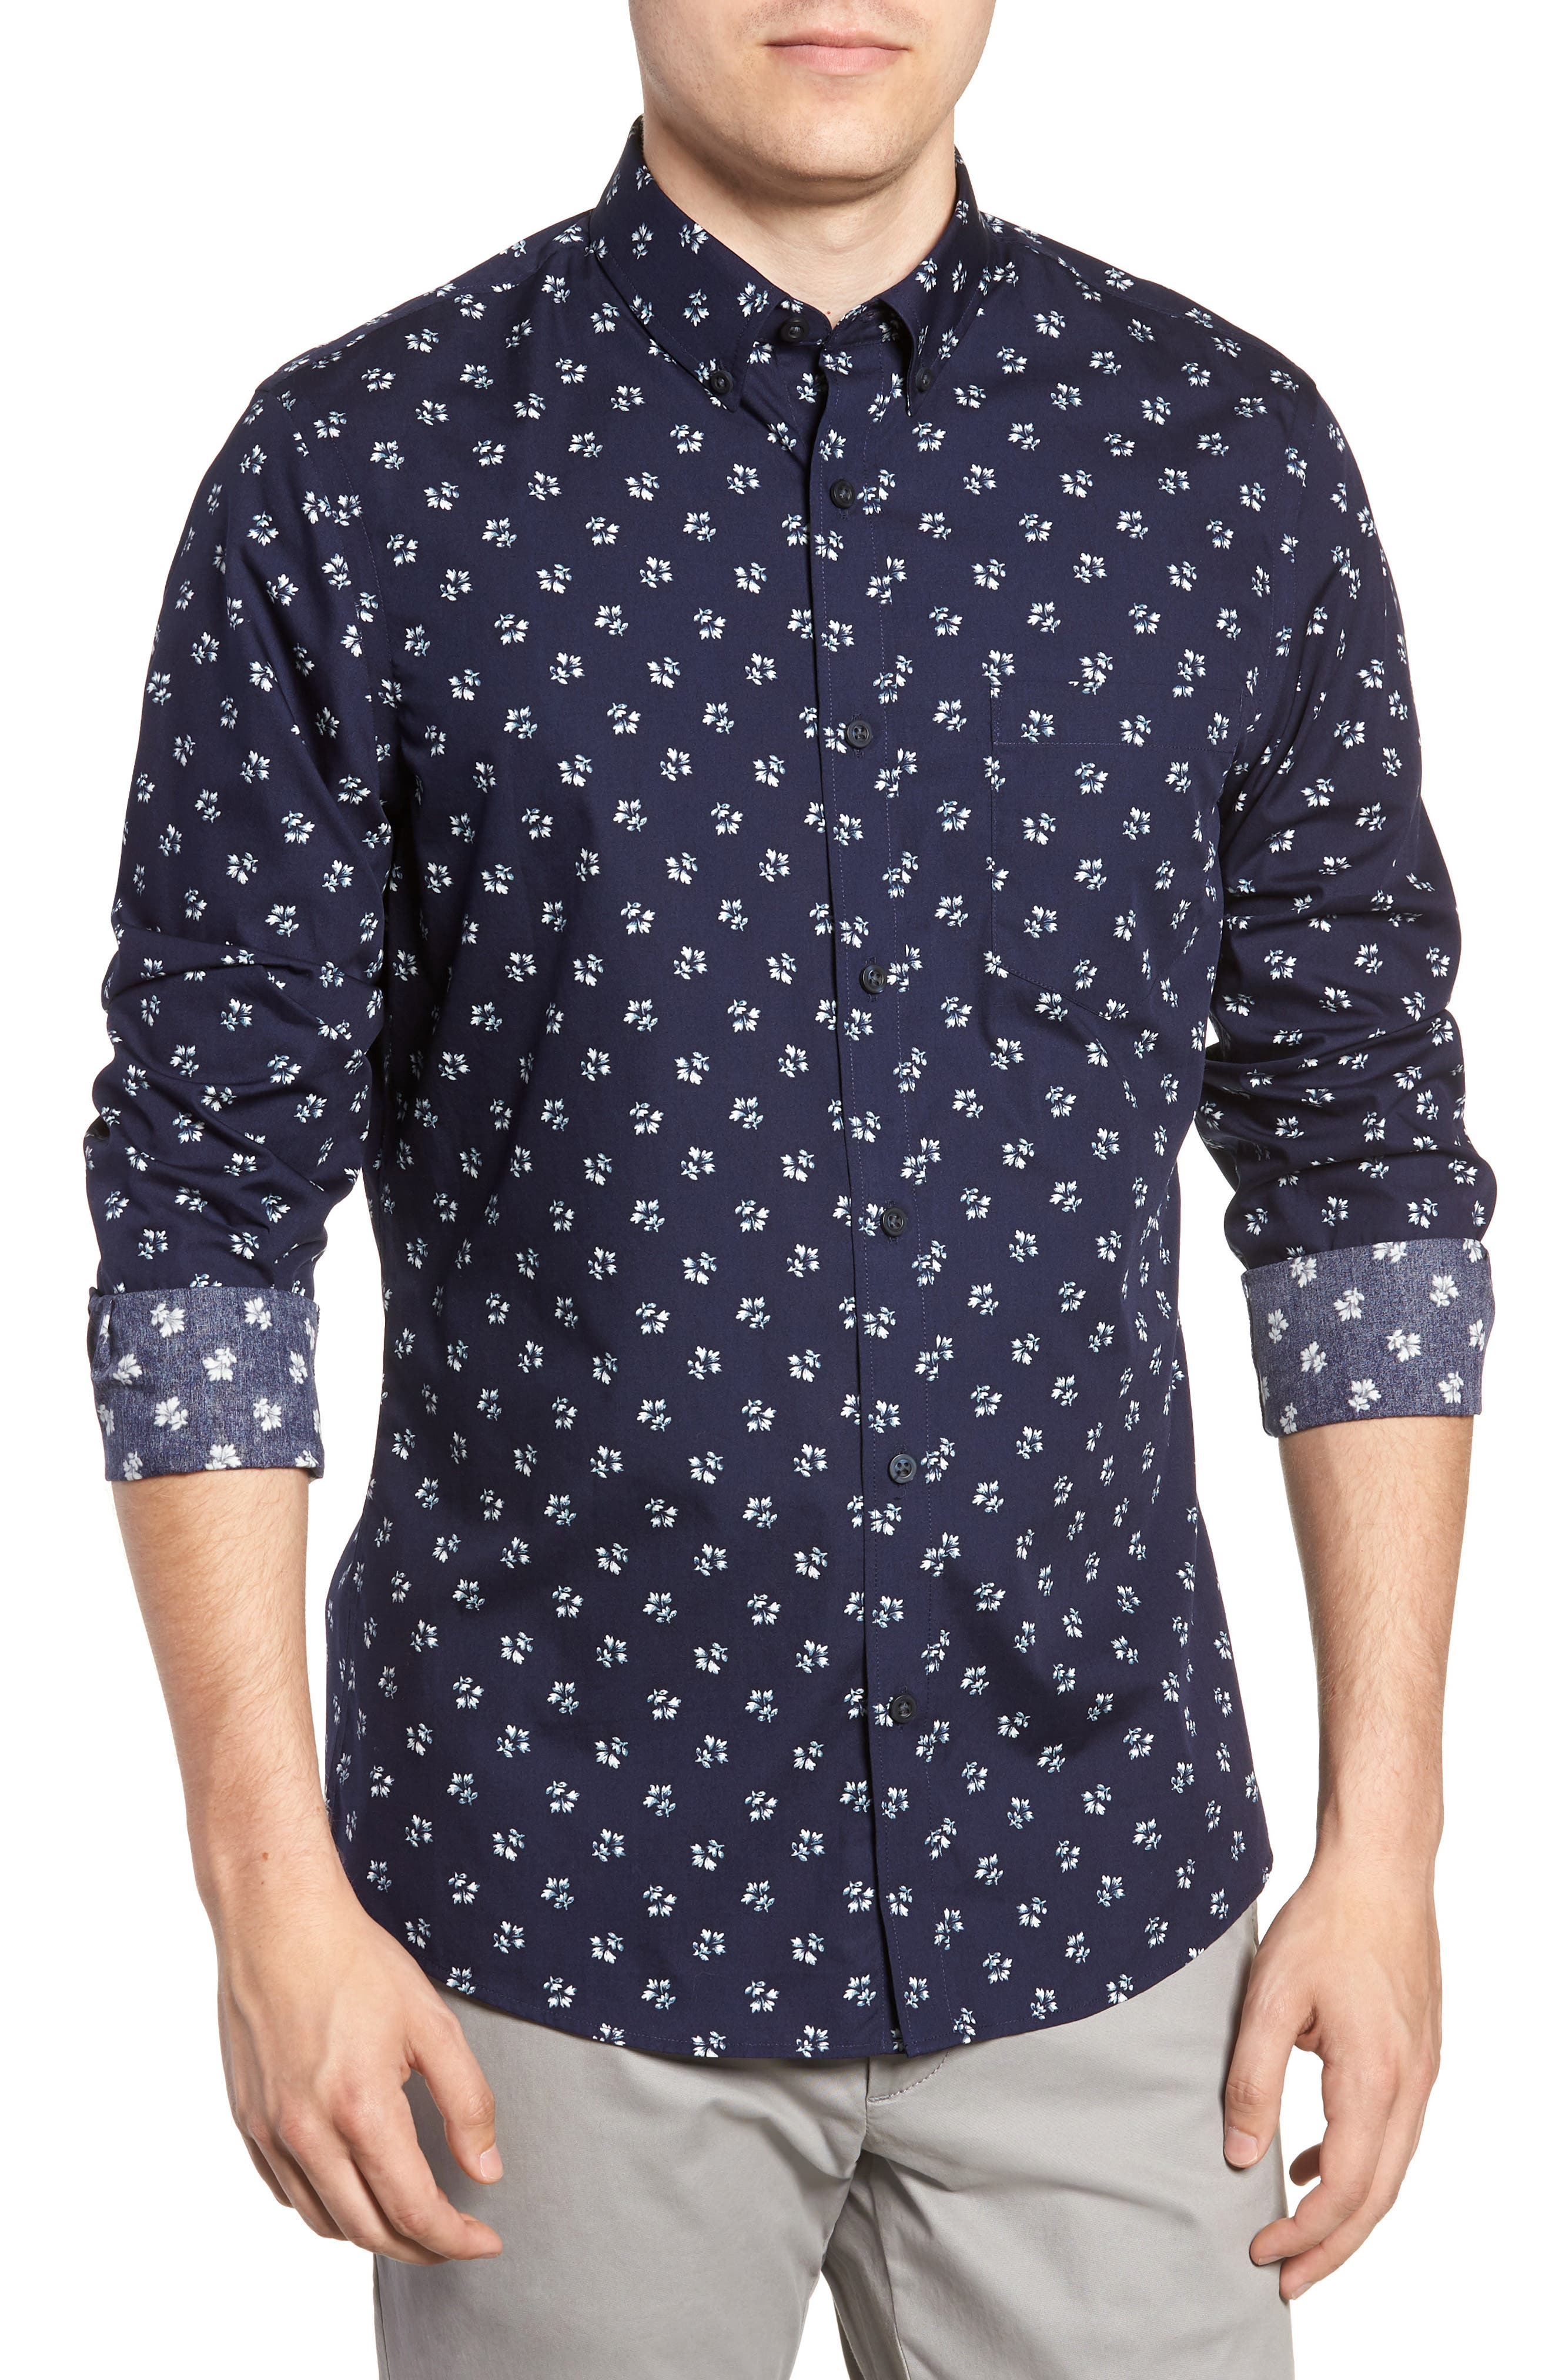 Trim Fit Non-Iron Print Sport Shirt,                             Main thumbnail 1, color,                             NAVY NIGHT FLORAL PRINT